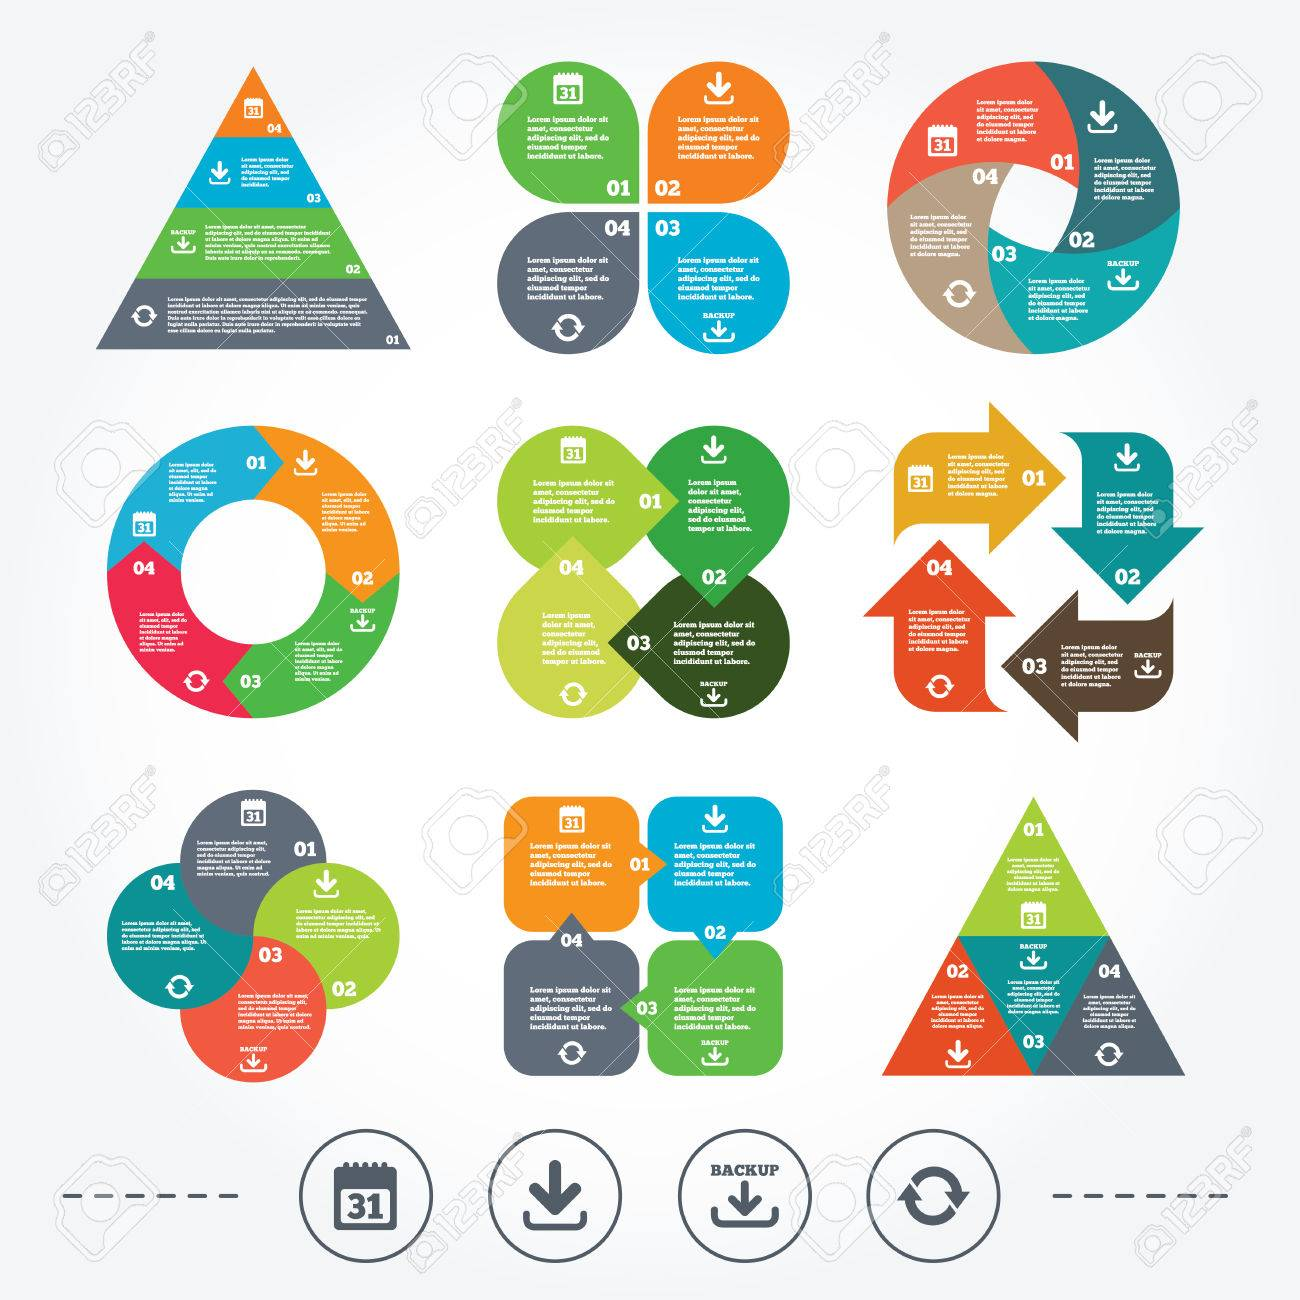 Circle and triangle diagram charts download and backup data circle and triangle diagram charts download and backup data icons calendar and rotation arrows ccuart Choice Image